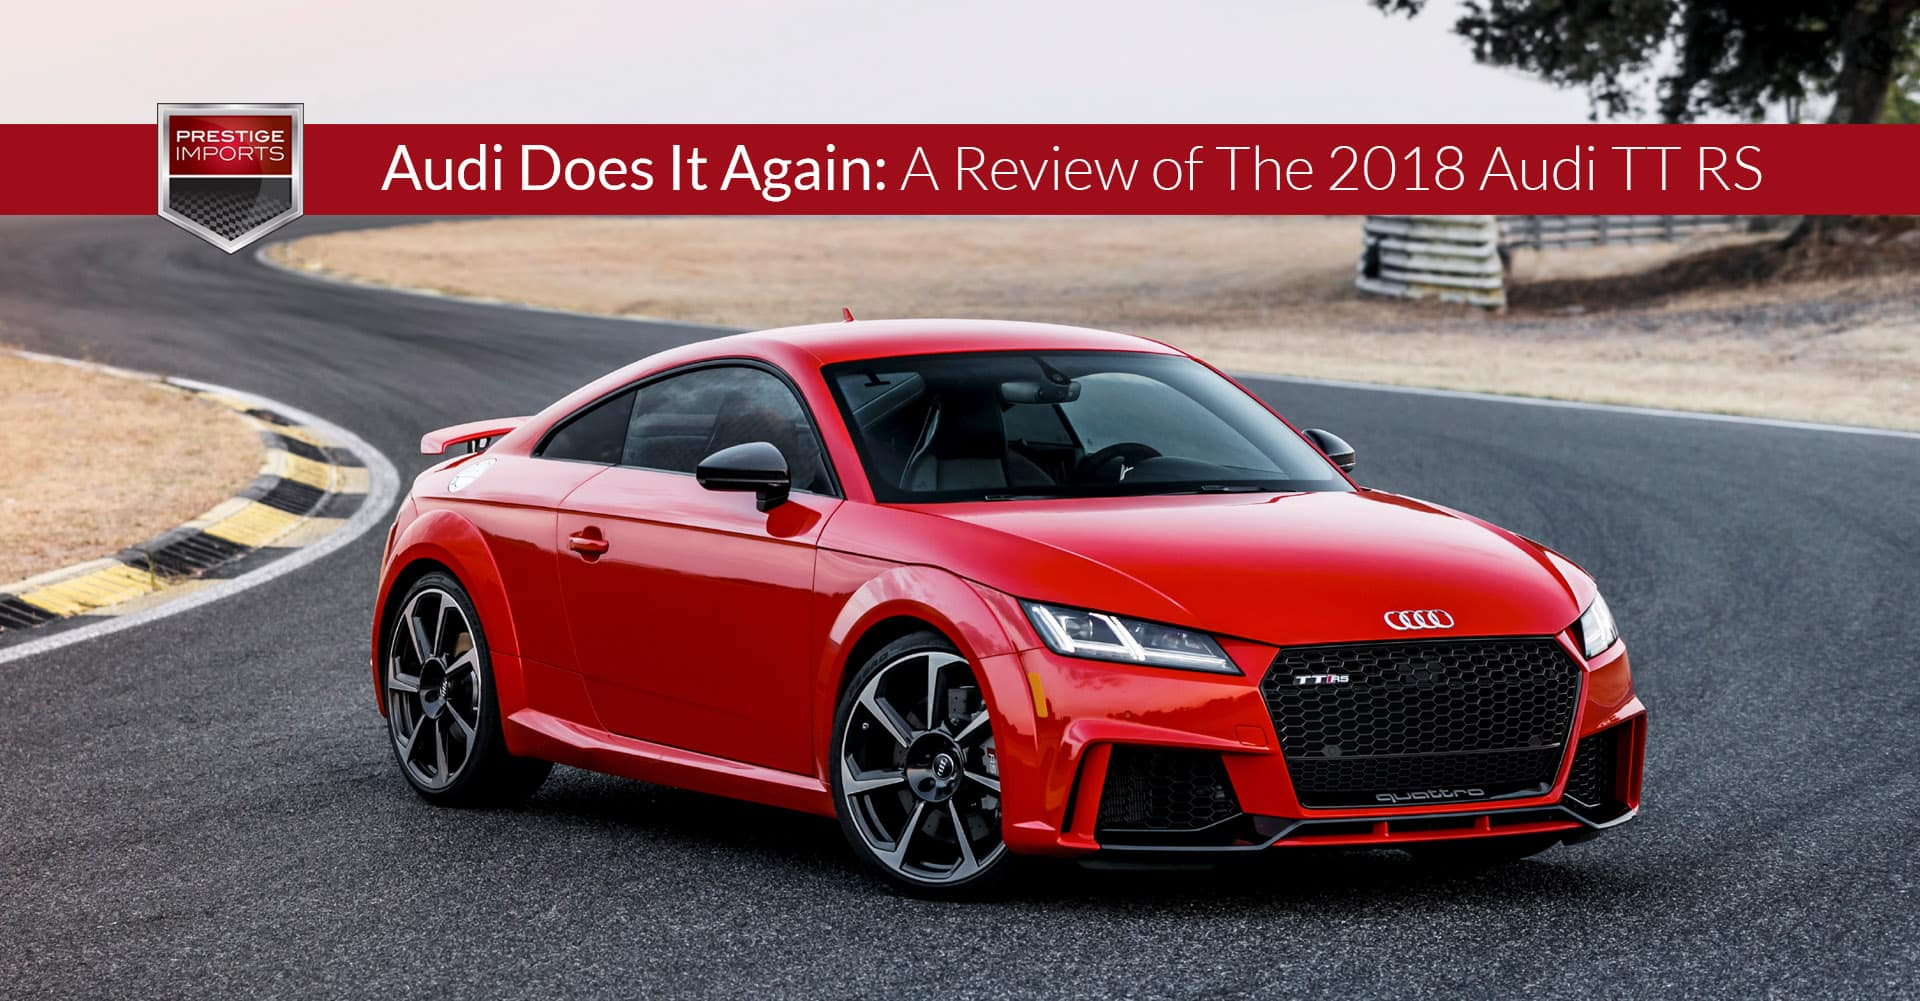 Audi Does It Again: A Review of The 2018 Audi TT RS